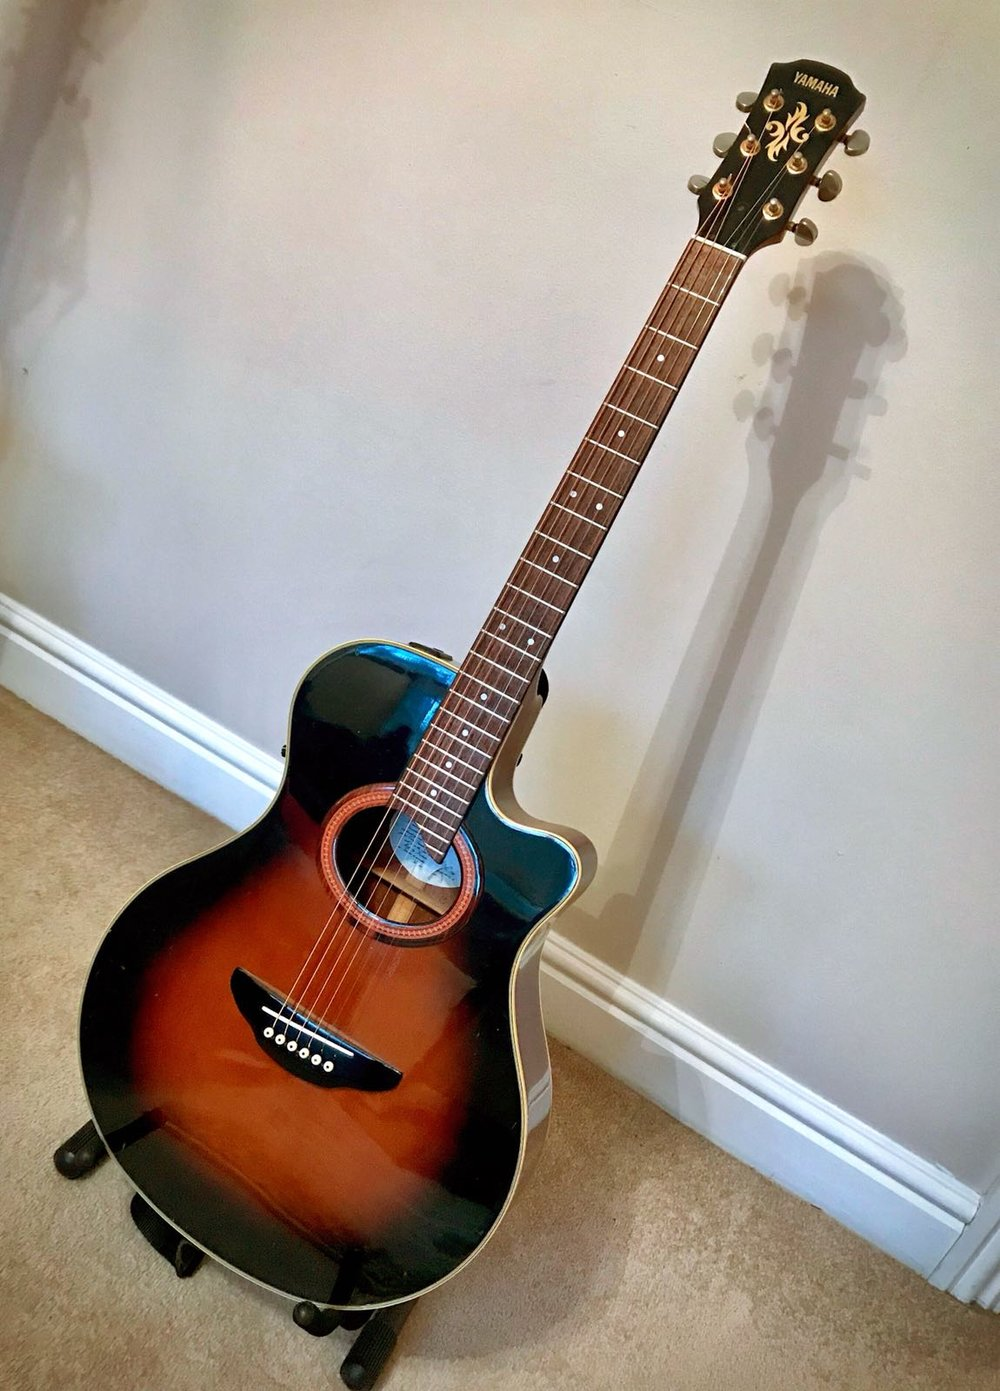 First Prize !! Win one of my first guitars .. its a Yamaha APX 6-A